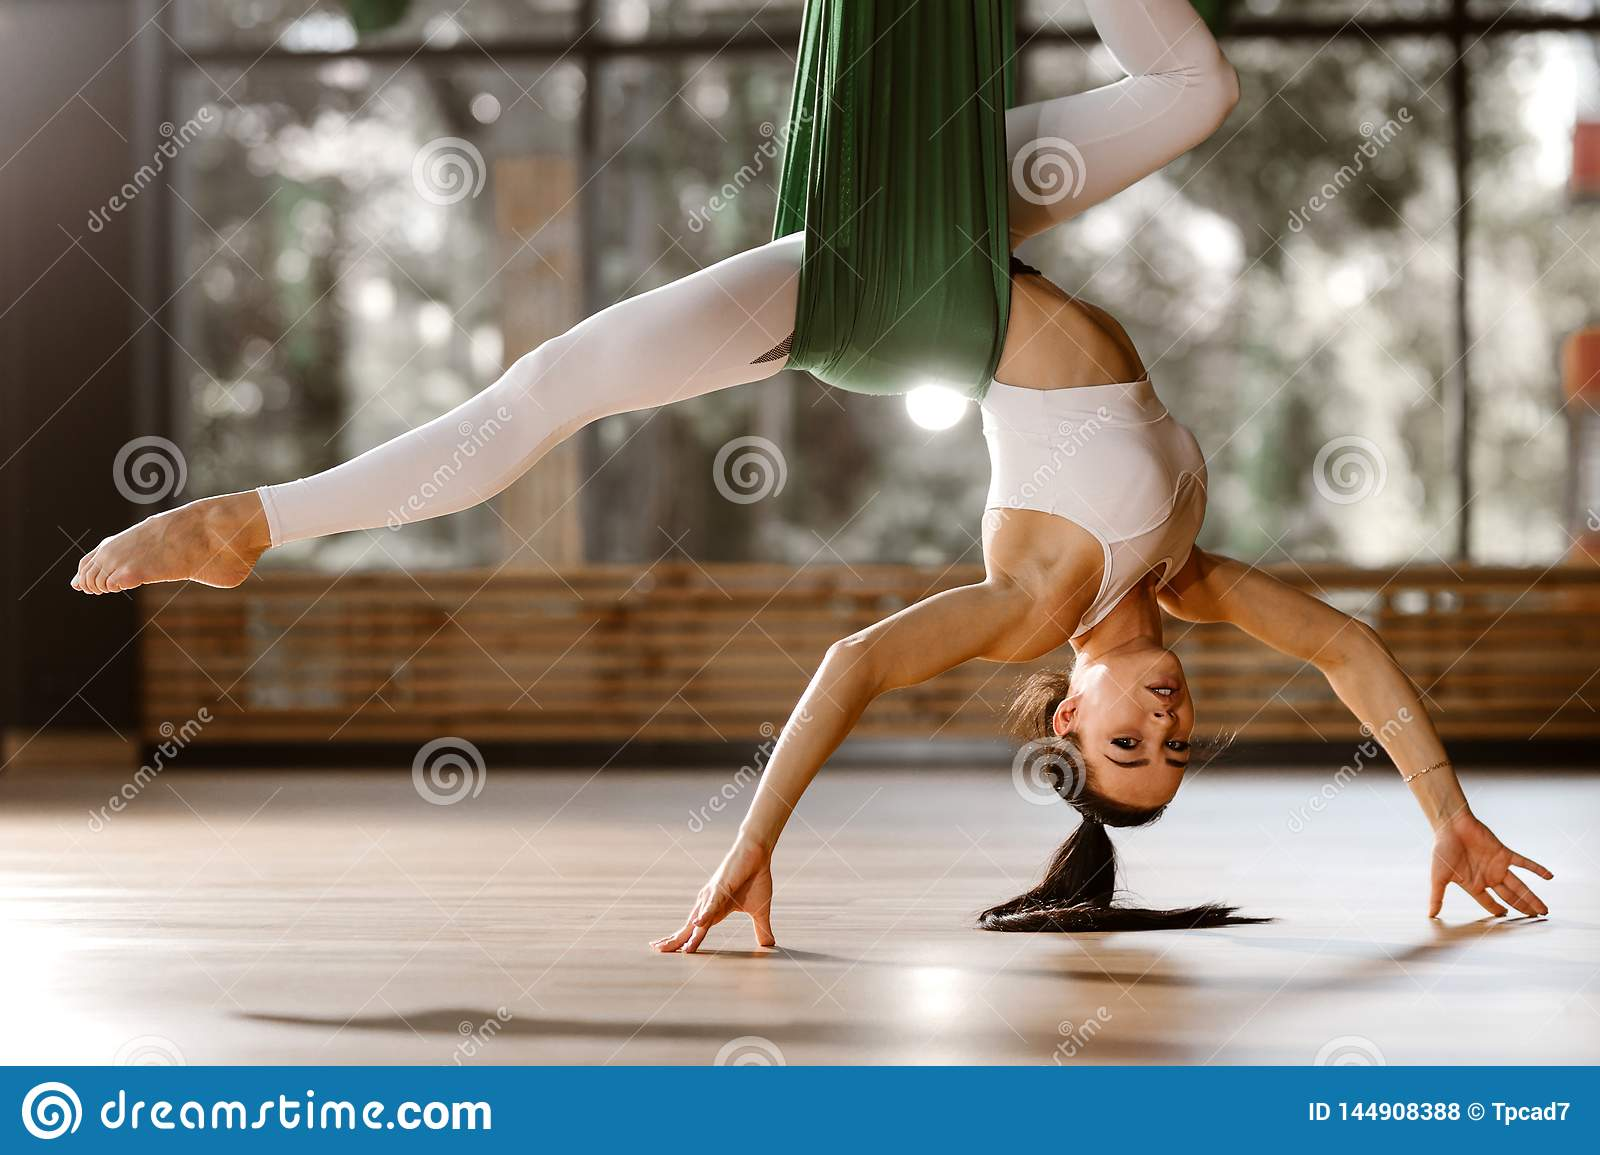 Beautiful slim dark-haired girl dressed in white sports top  and tights is doing stretching exercise on green hammock